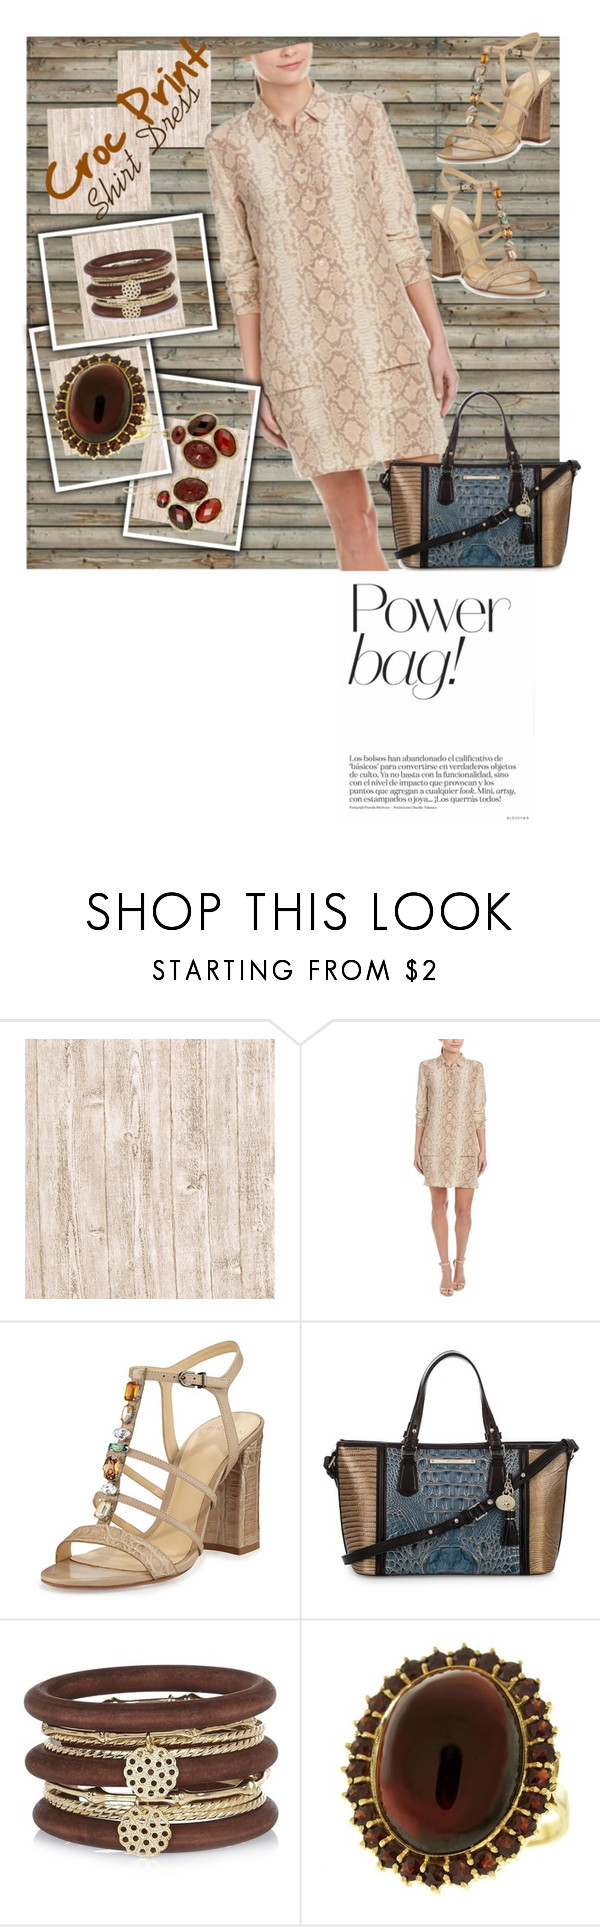 """Croc Print Shirt Dress"" by mdfletch ❤ liked on Polyvore featuring Mr Perswall, Equipment, Alexandre Birman, Brahmin, River Island, The Sak and shirtdress"